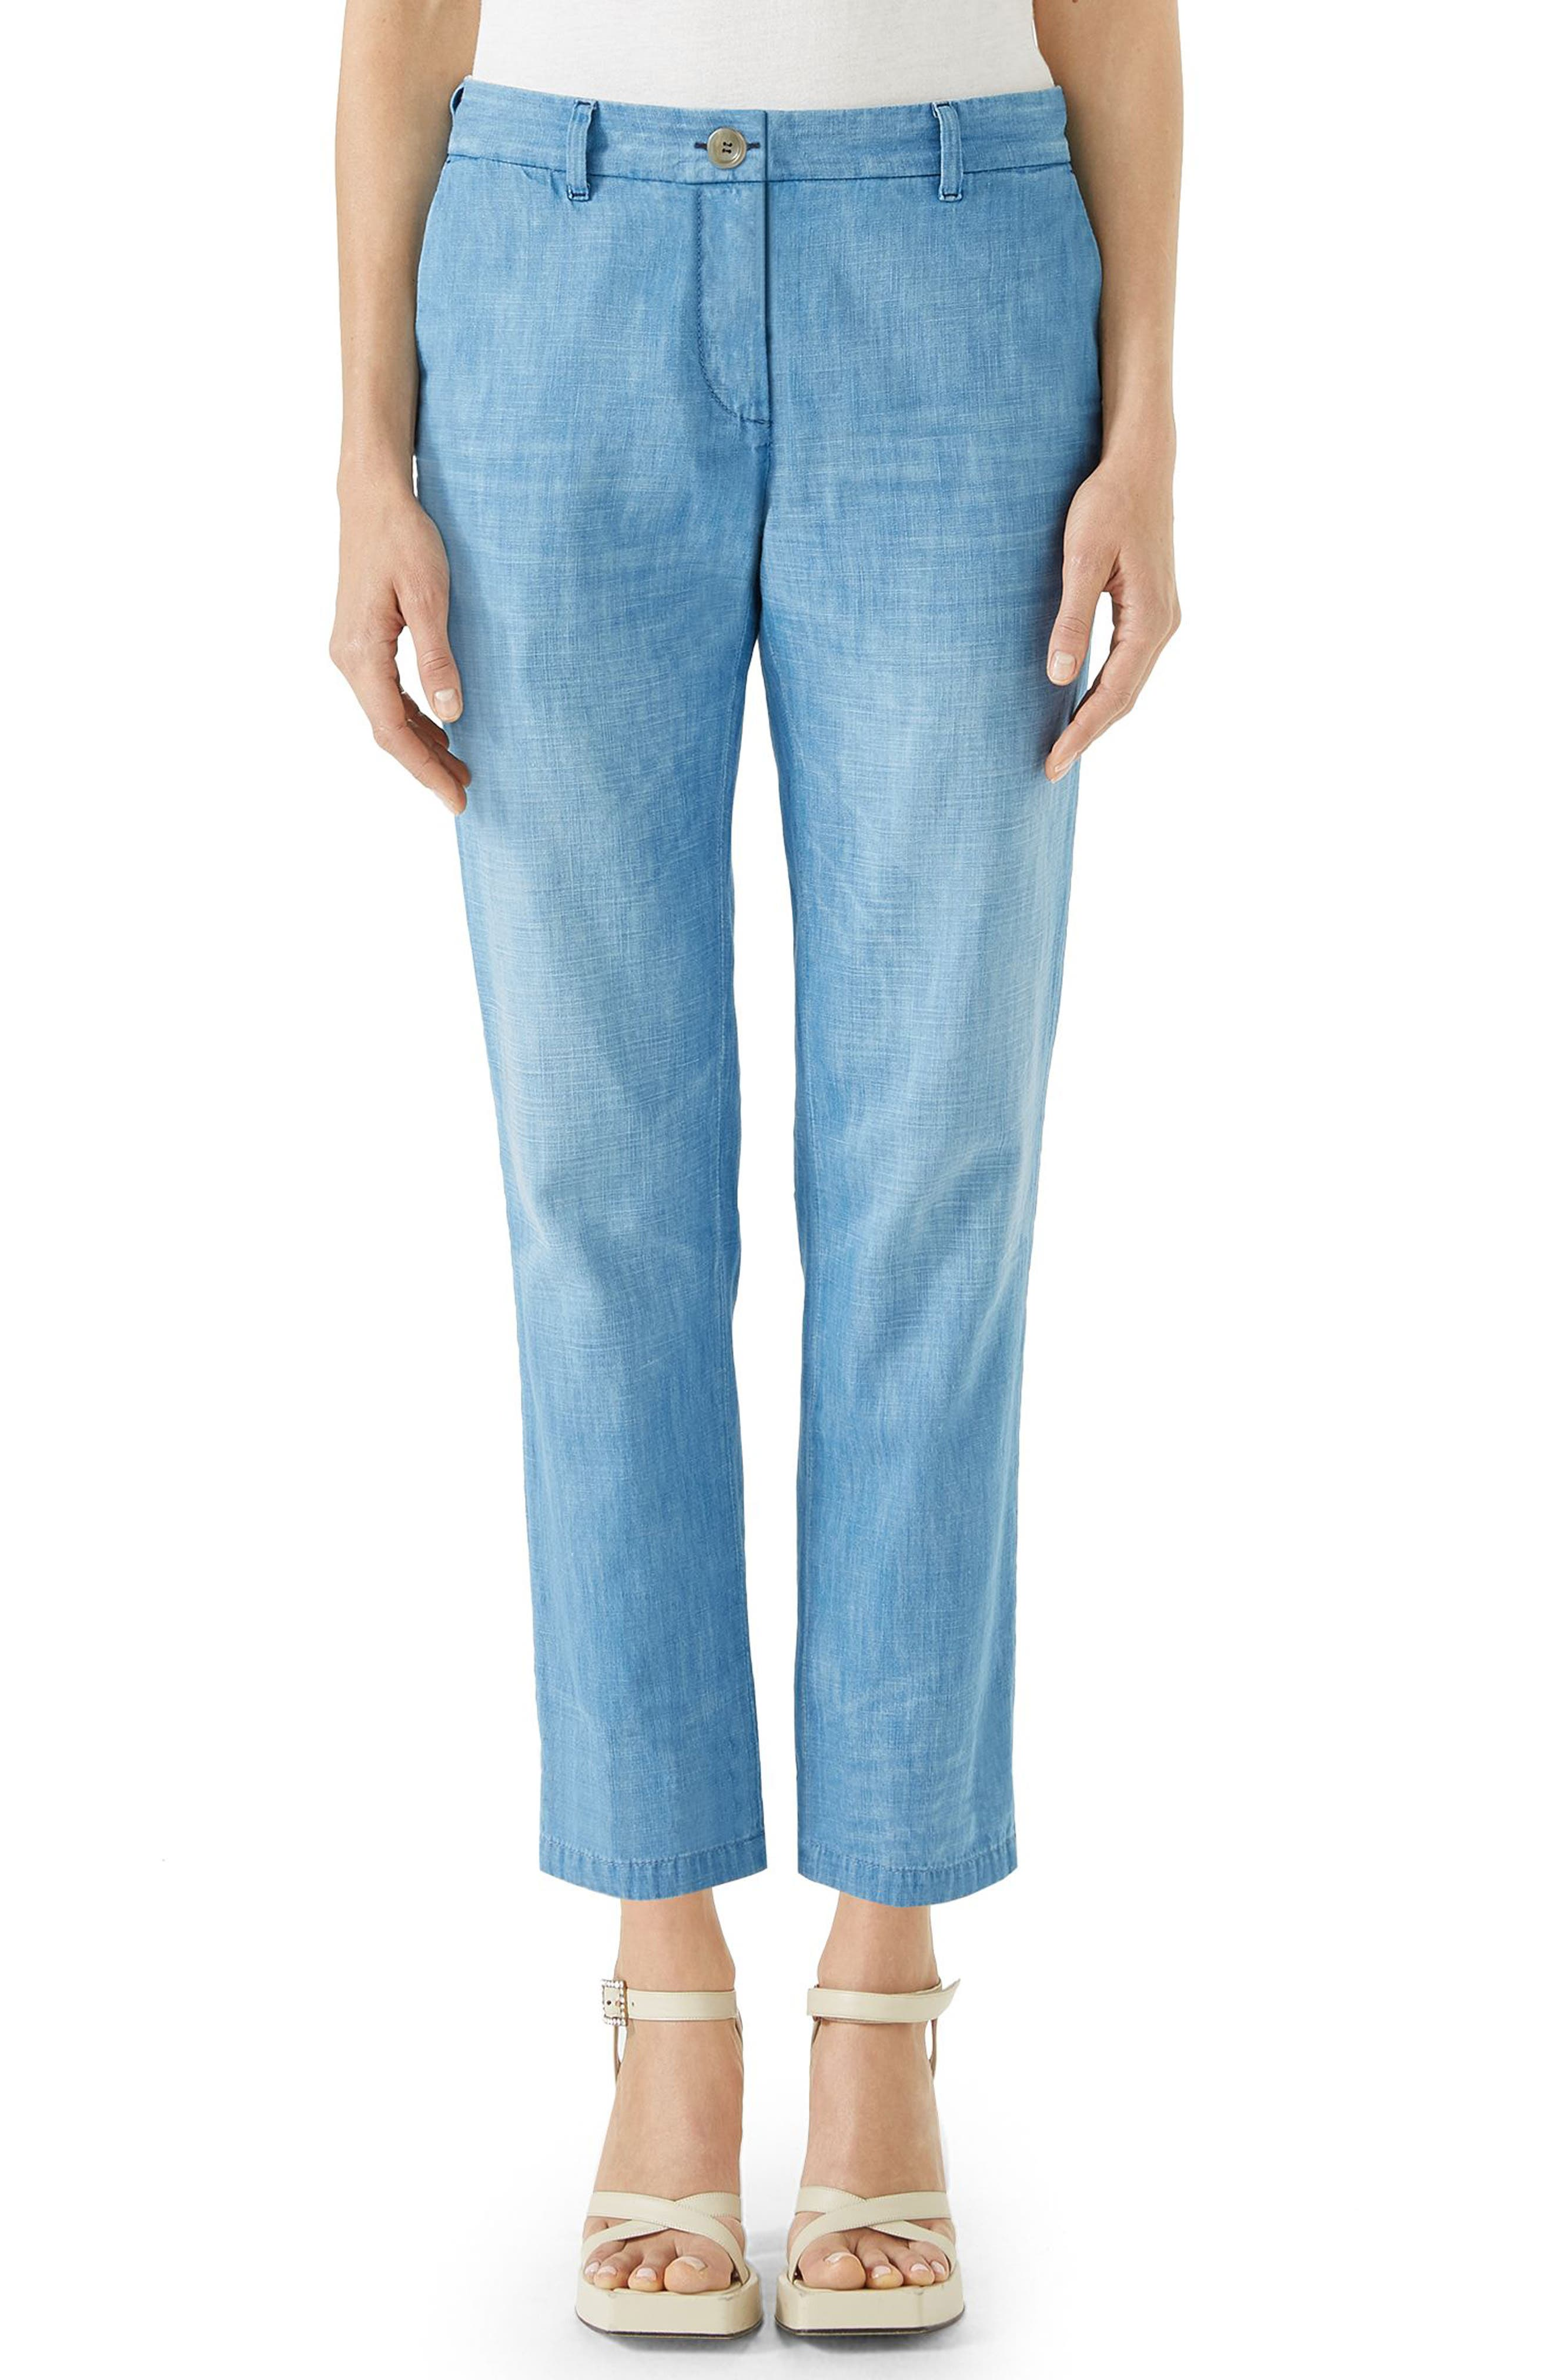 Denim Chino Pants,                         Main,                         color, Light Blue/ Red